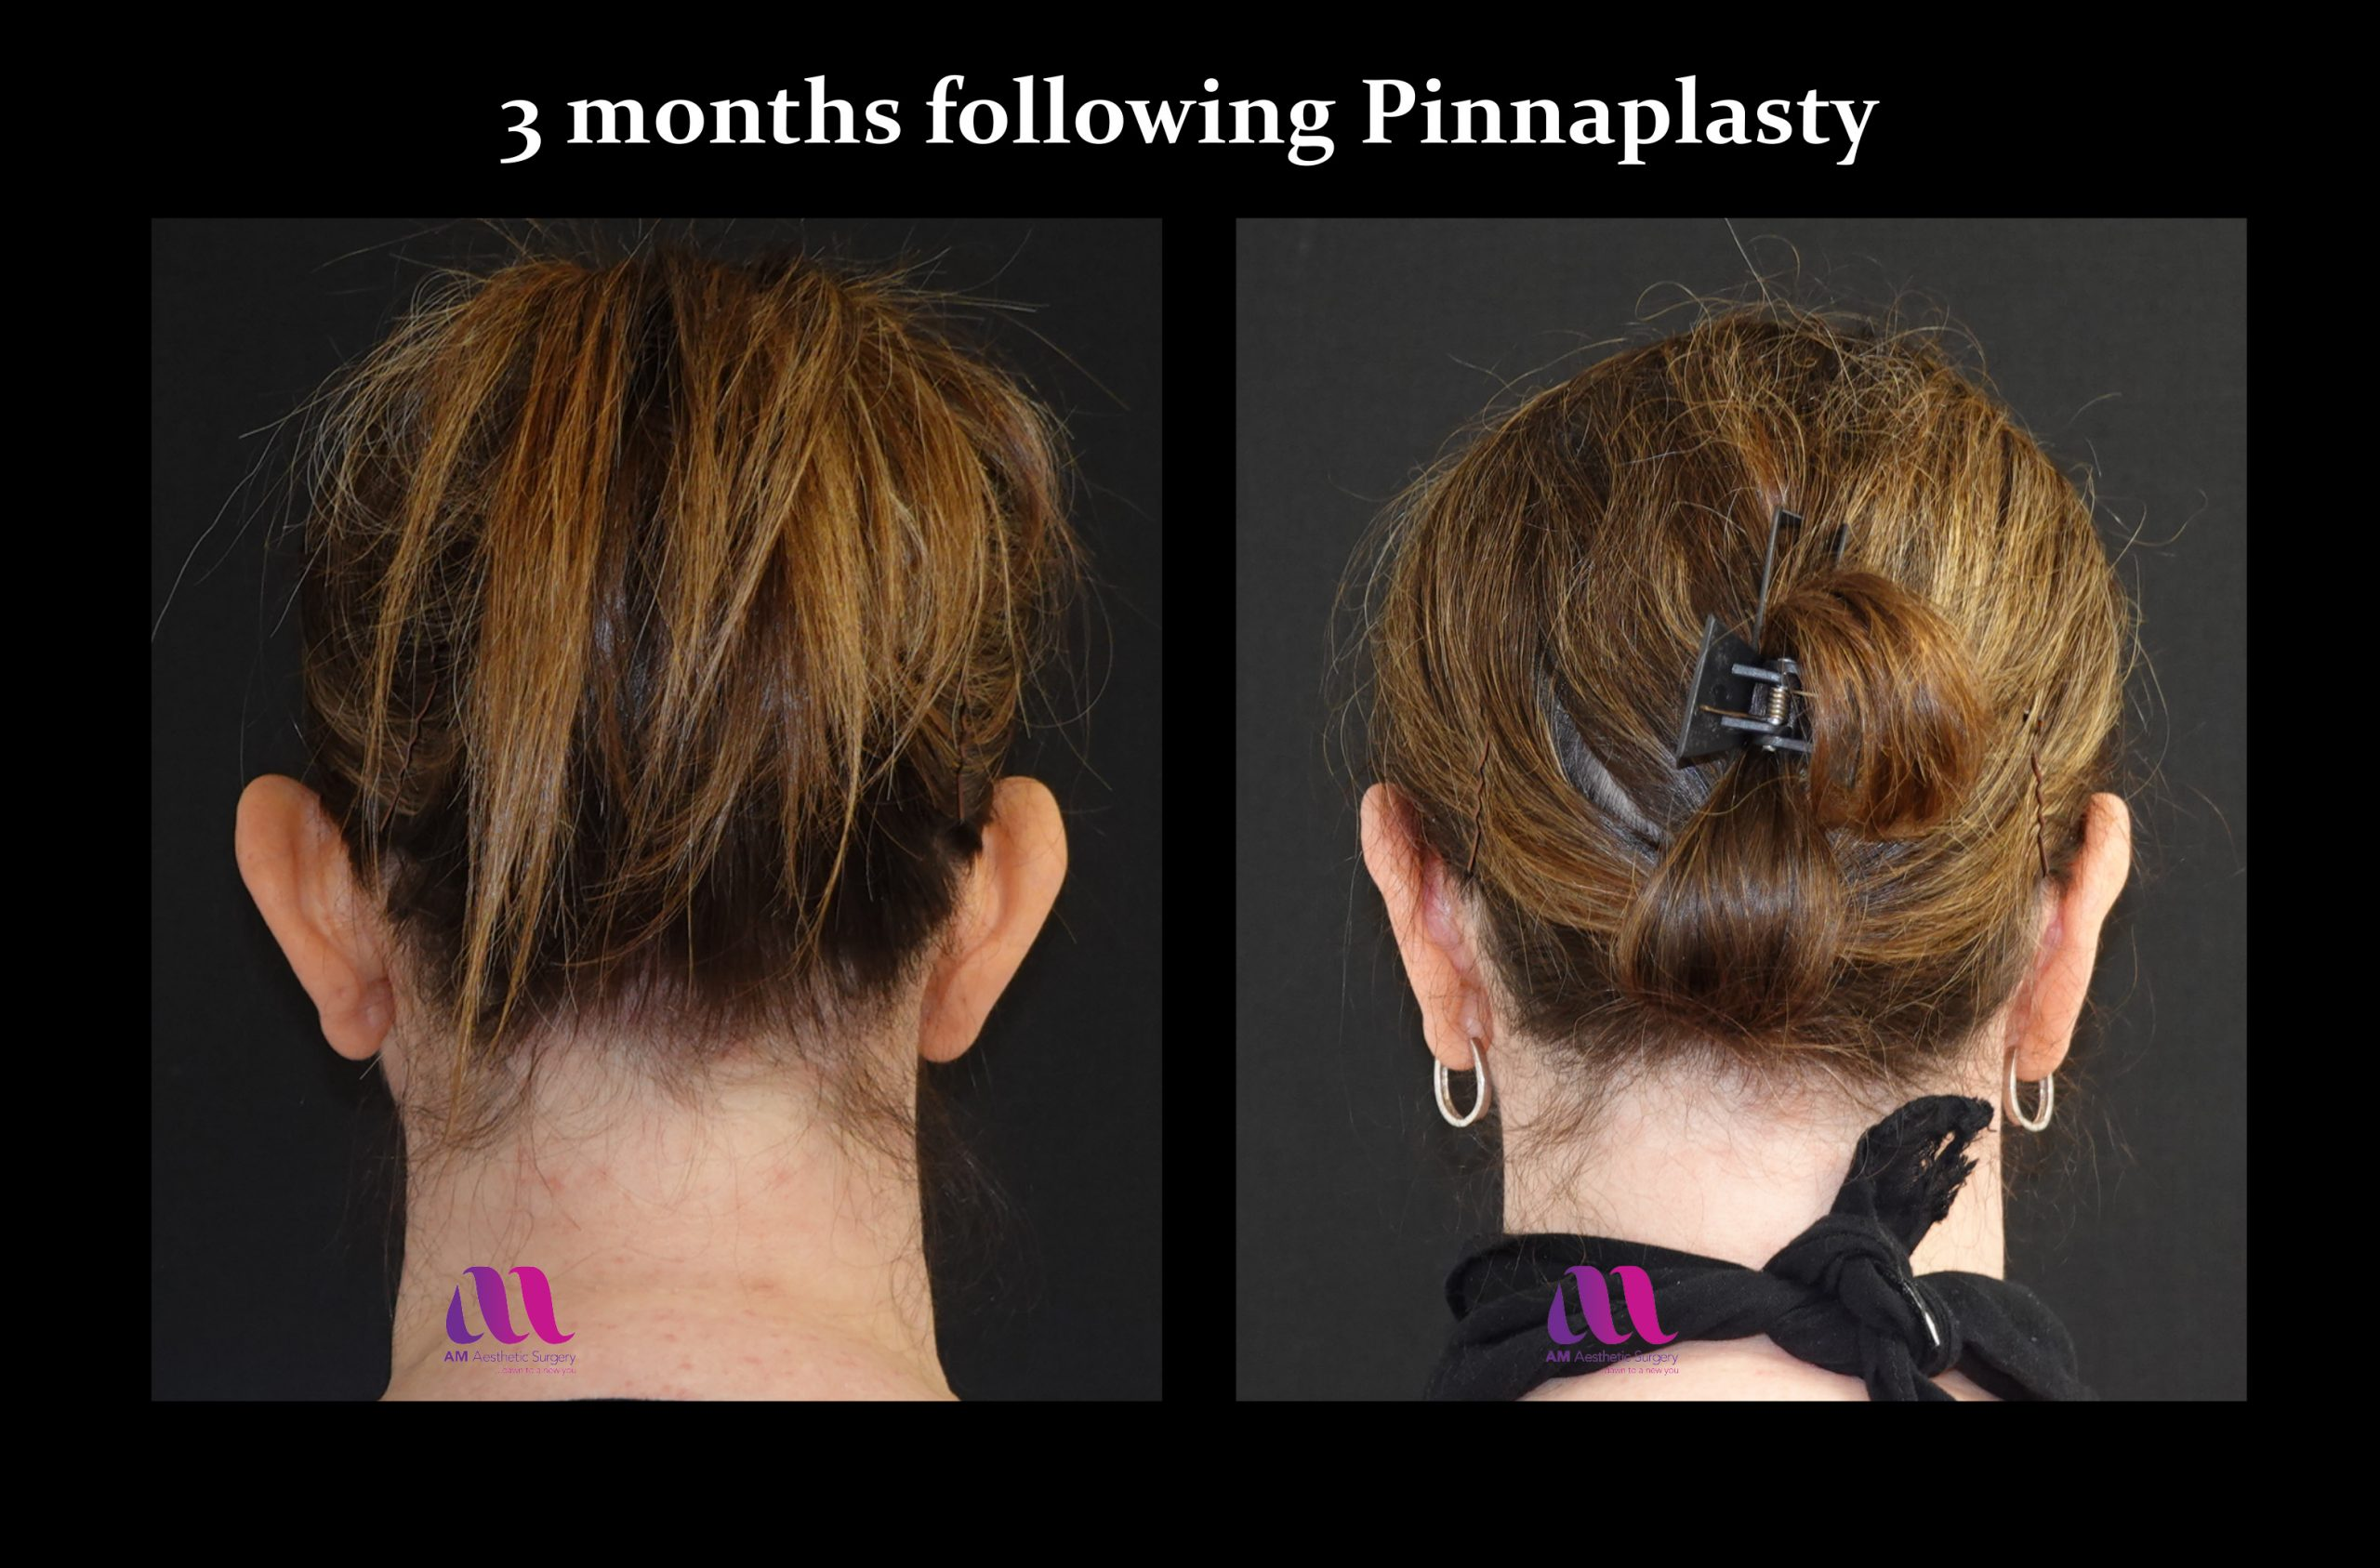 Pinnaplasty2d